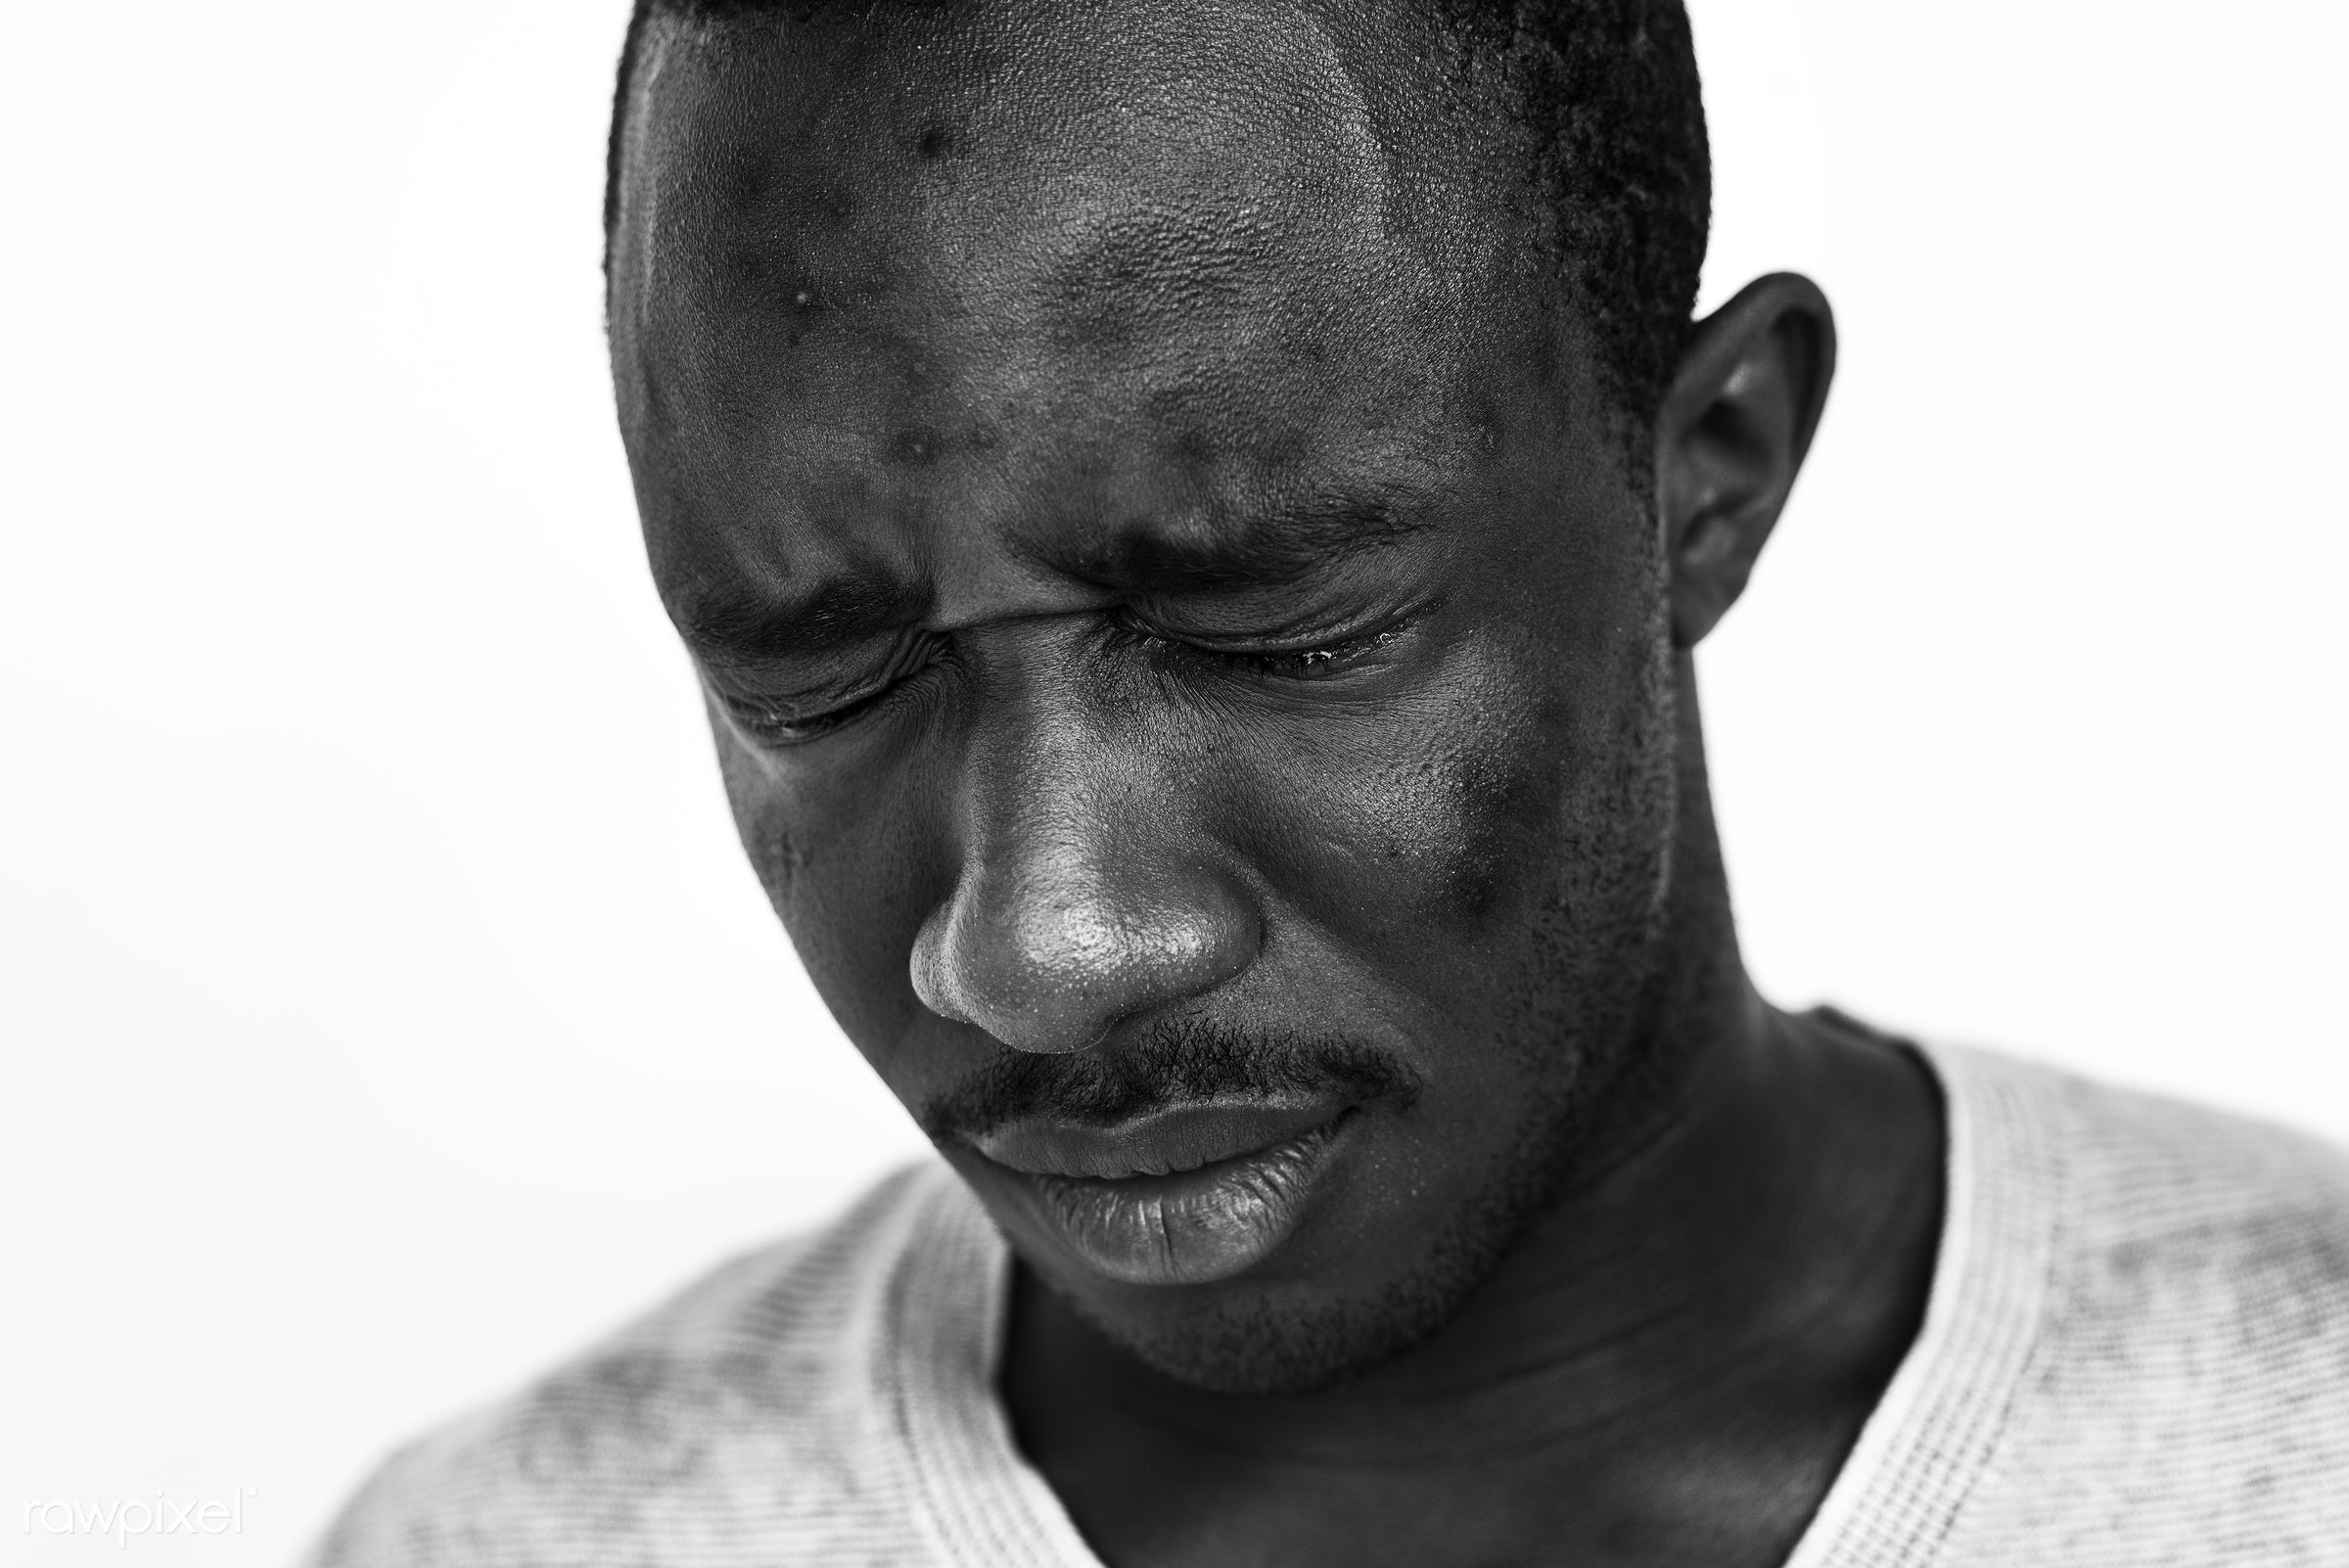 Portrait of a Ghanaian man - adult, africa, african, african descent, alone, anguish, beard, black, black and white, closeup...